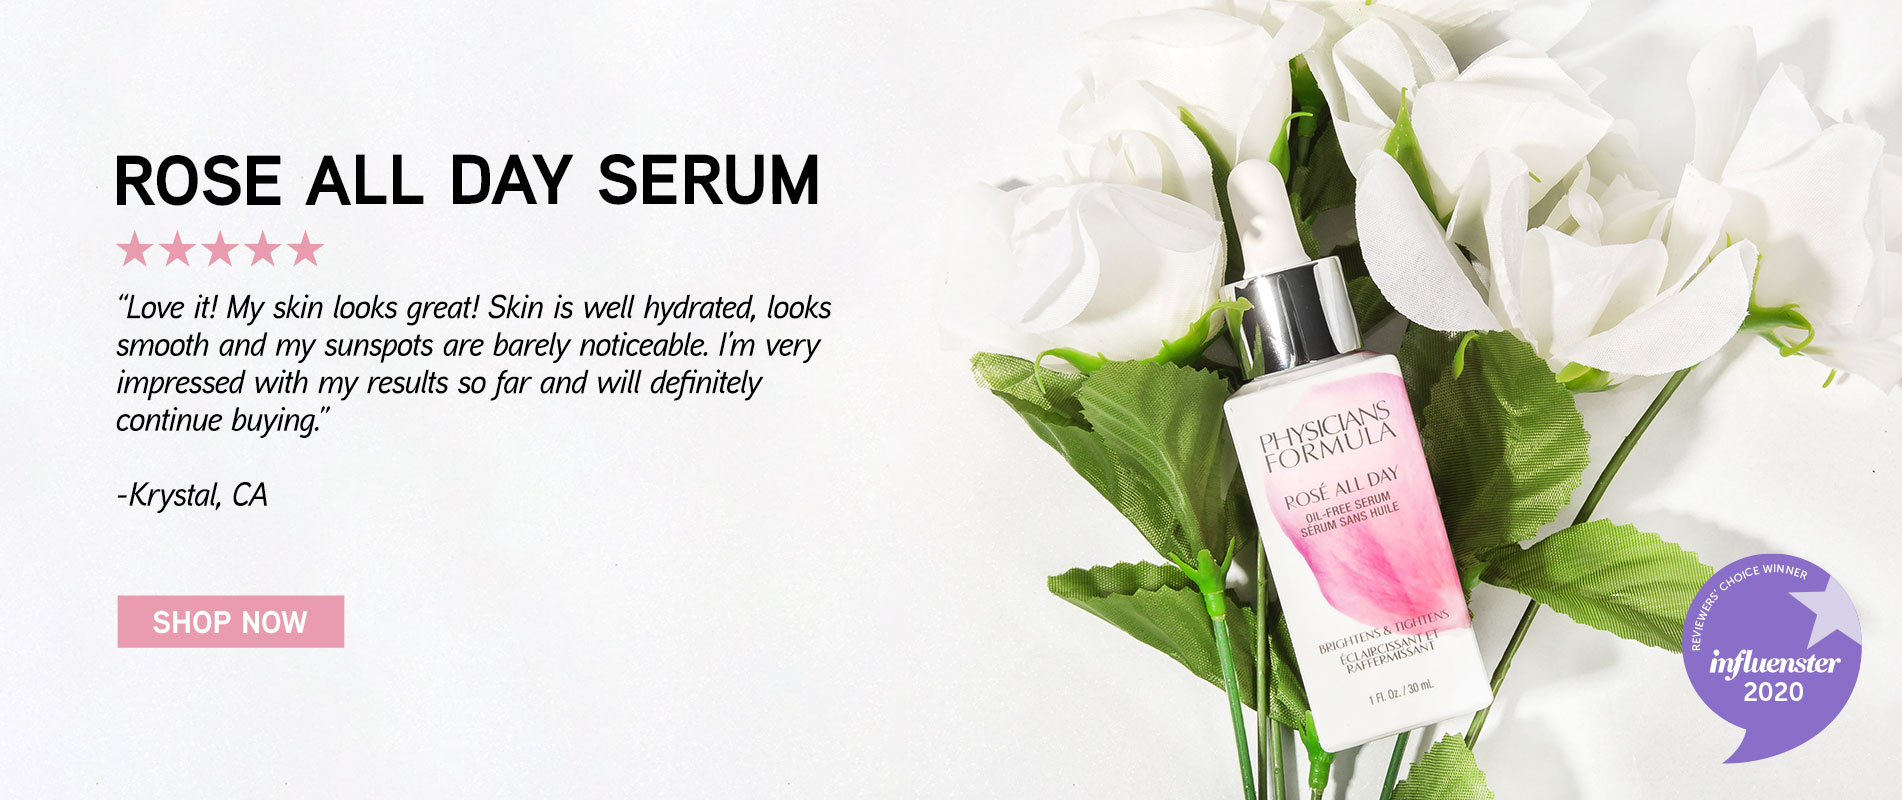 Physicians Formula | Rose All Day Serum | Love it! My skin looks good! Skin is well hydrated, looks smooth and my sunspots are barely noticeable. I'm very impressed with my results so far and will definitely continue buying. | CLICK HERE TO SHOP NOW